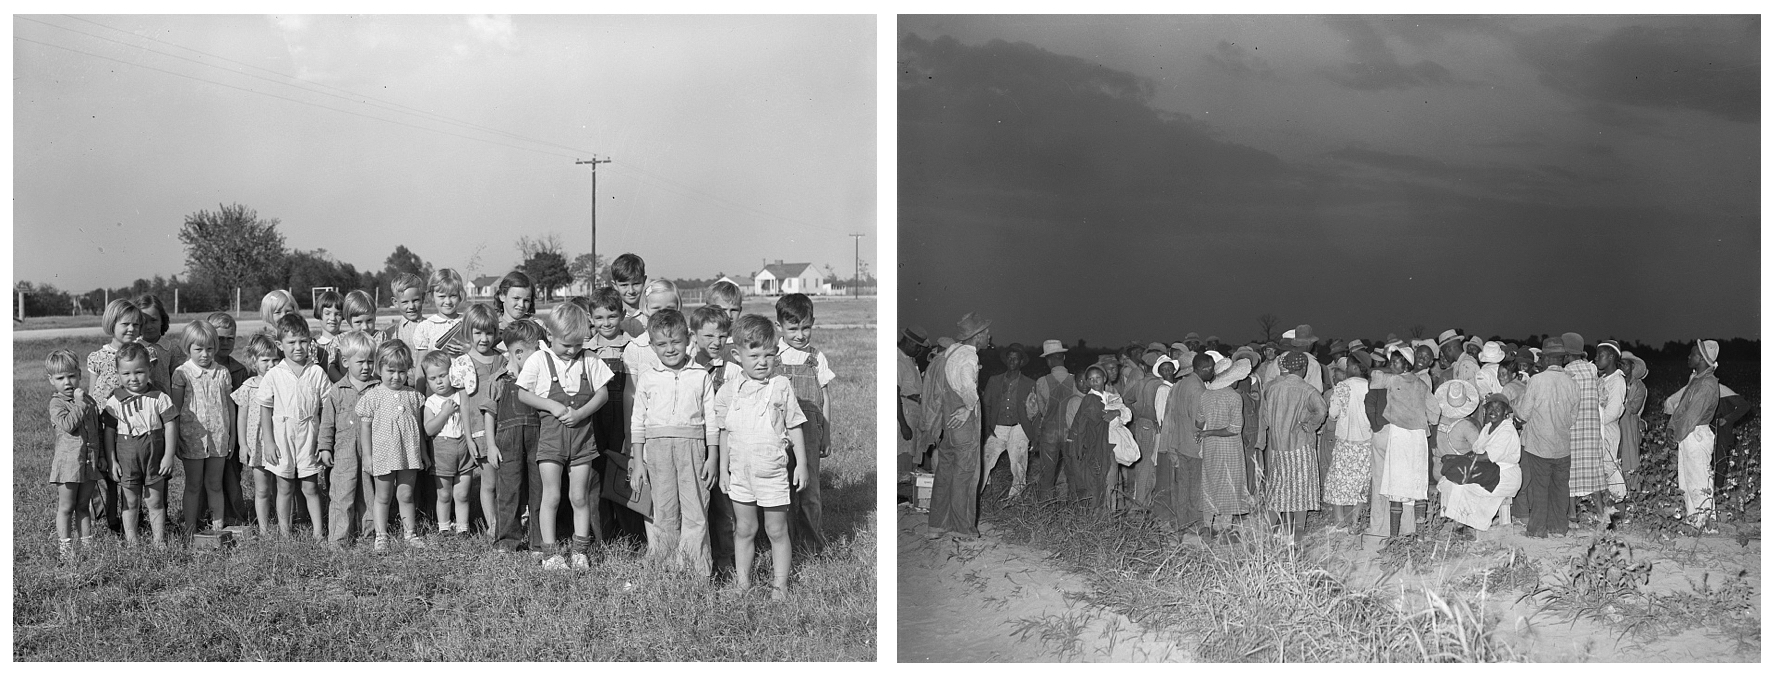 Left: Schoolchildren, Lake Dick Project, 1938. Russell Lee.  Right: Cotton pickers, day laborers, waiting to be paid at end of day's work, Lake Dick, 1938. Russell Lee.